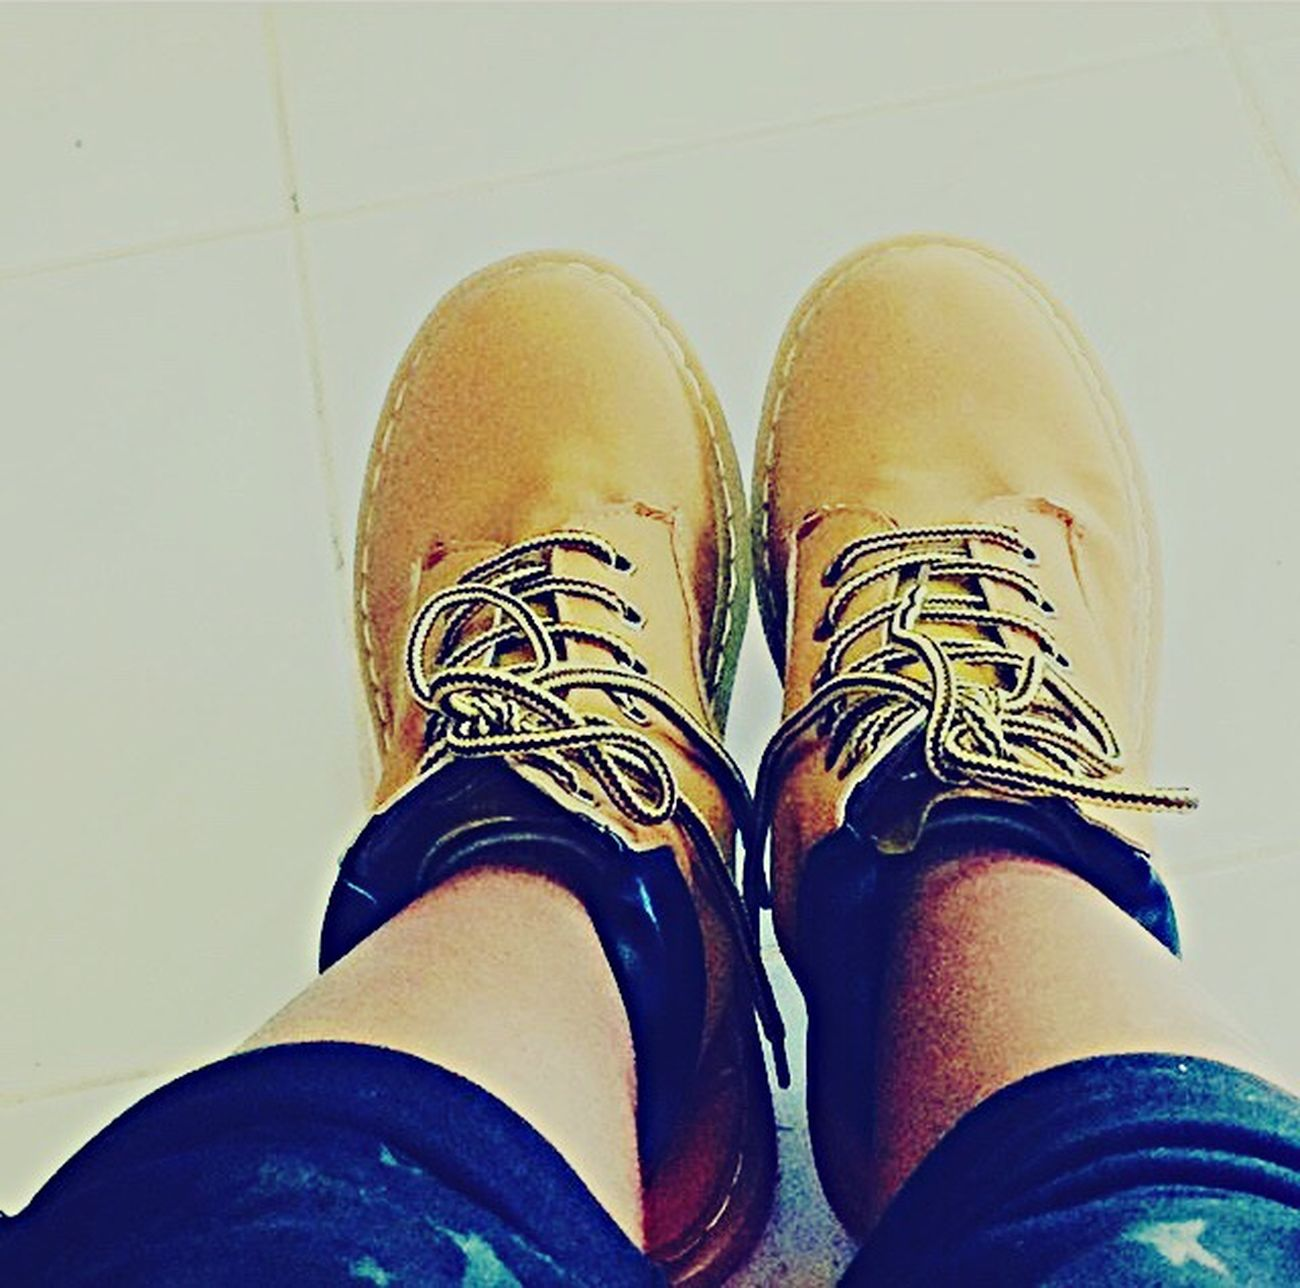 Life Day Fashion Shoes ♥ Kstyle